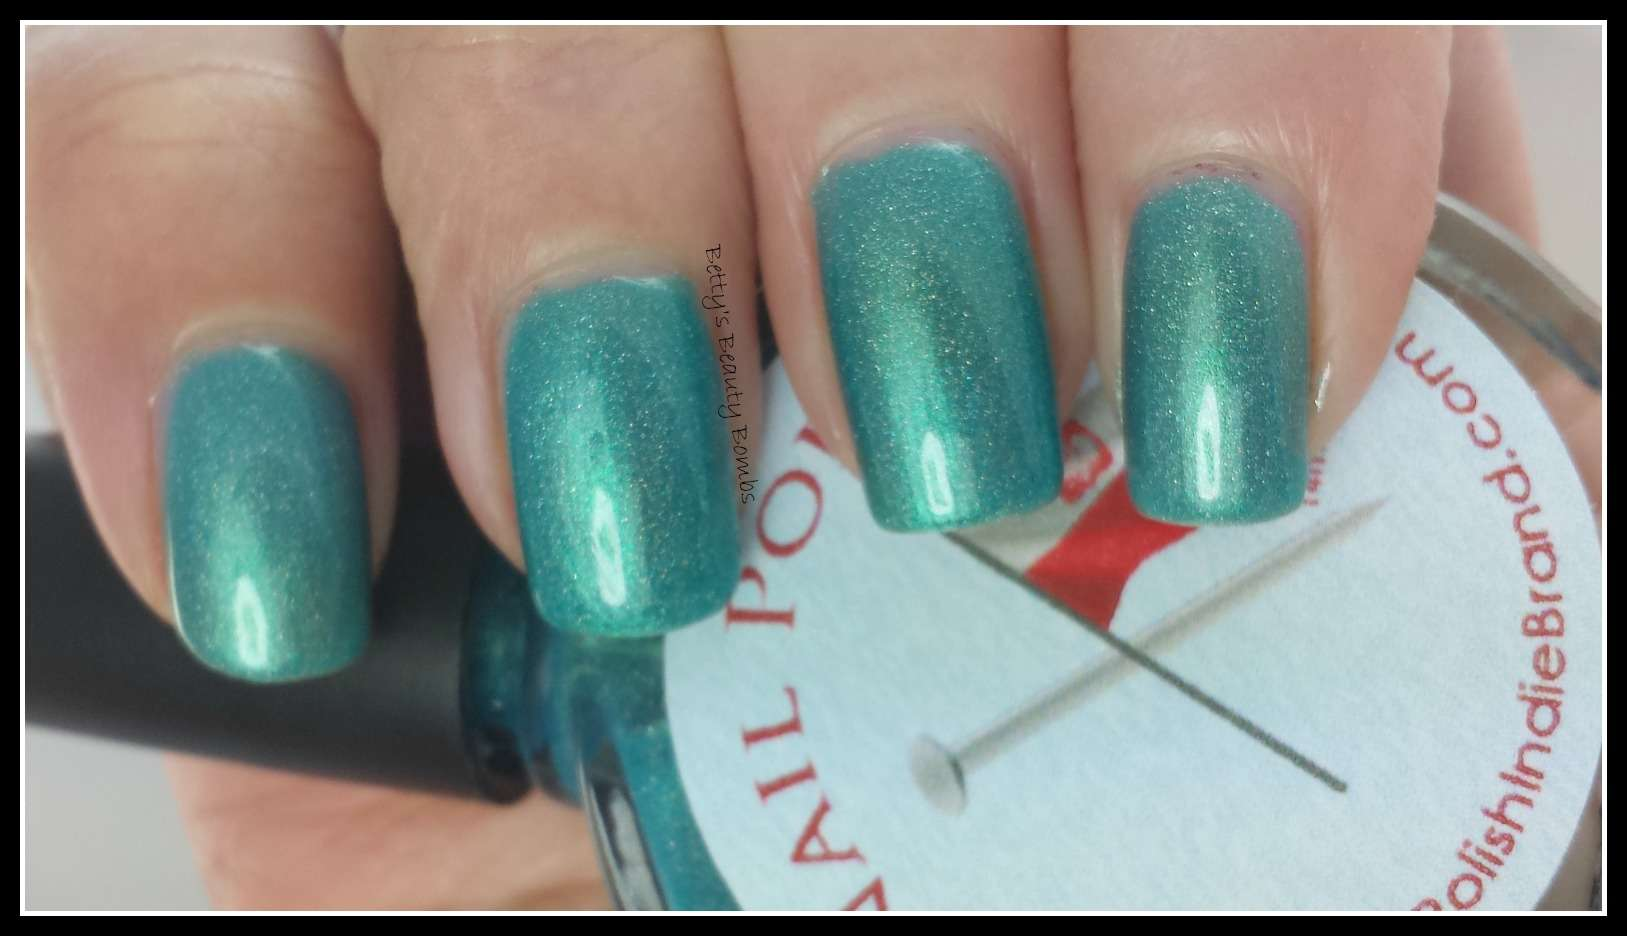 Nail Polish Indie Brand Buffy the Vampire Slayer Collection - Lazy Betty